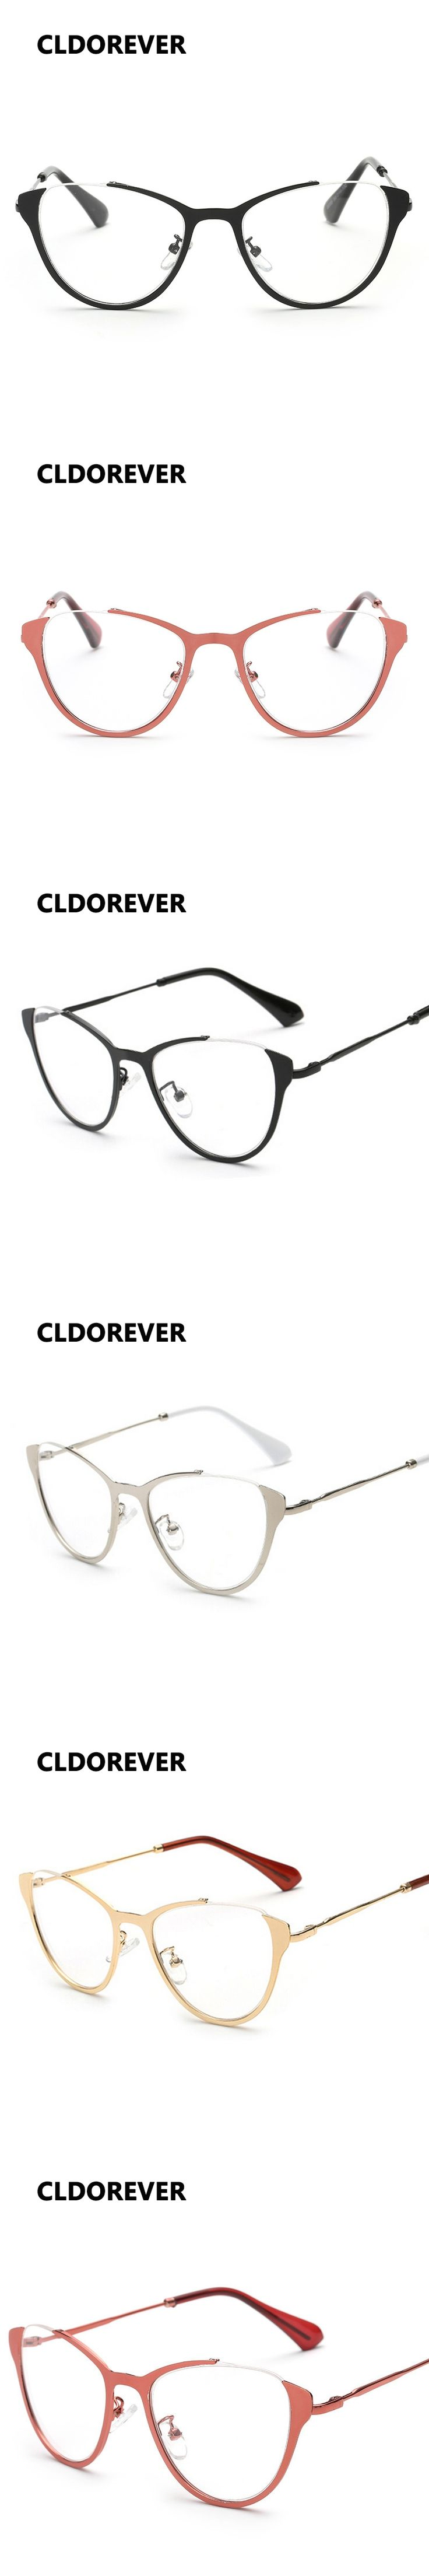 2017 New Myopia Eyeglasses Men Women Metal Cat Eye Glasses Frame Brand Designer Eyeglasses Frame Optical Computer Eyewear Oculos